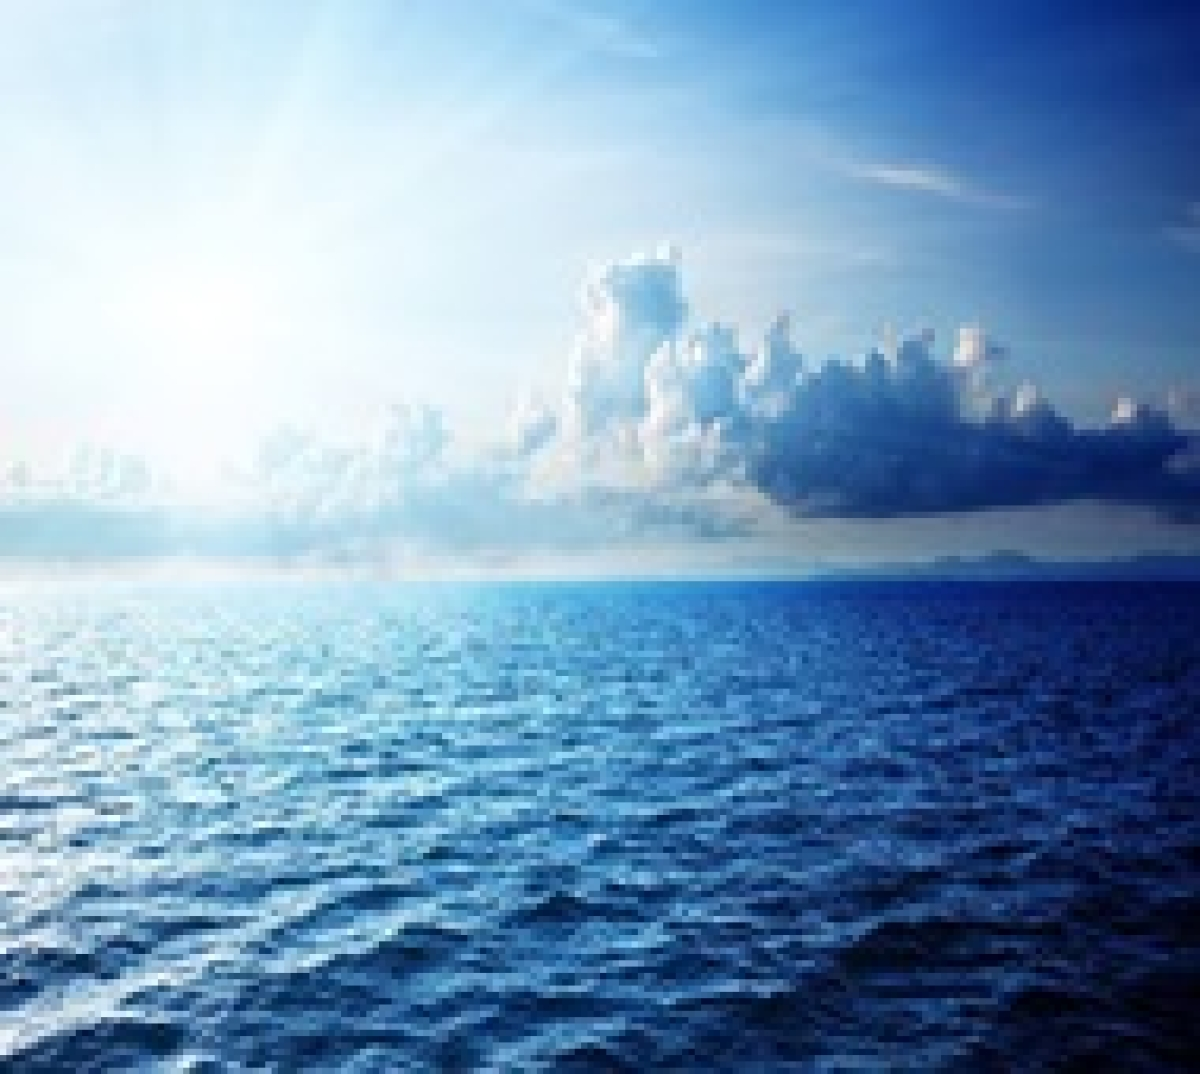 Loss of ocean oxygen to be apparent by 2030s